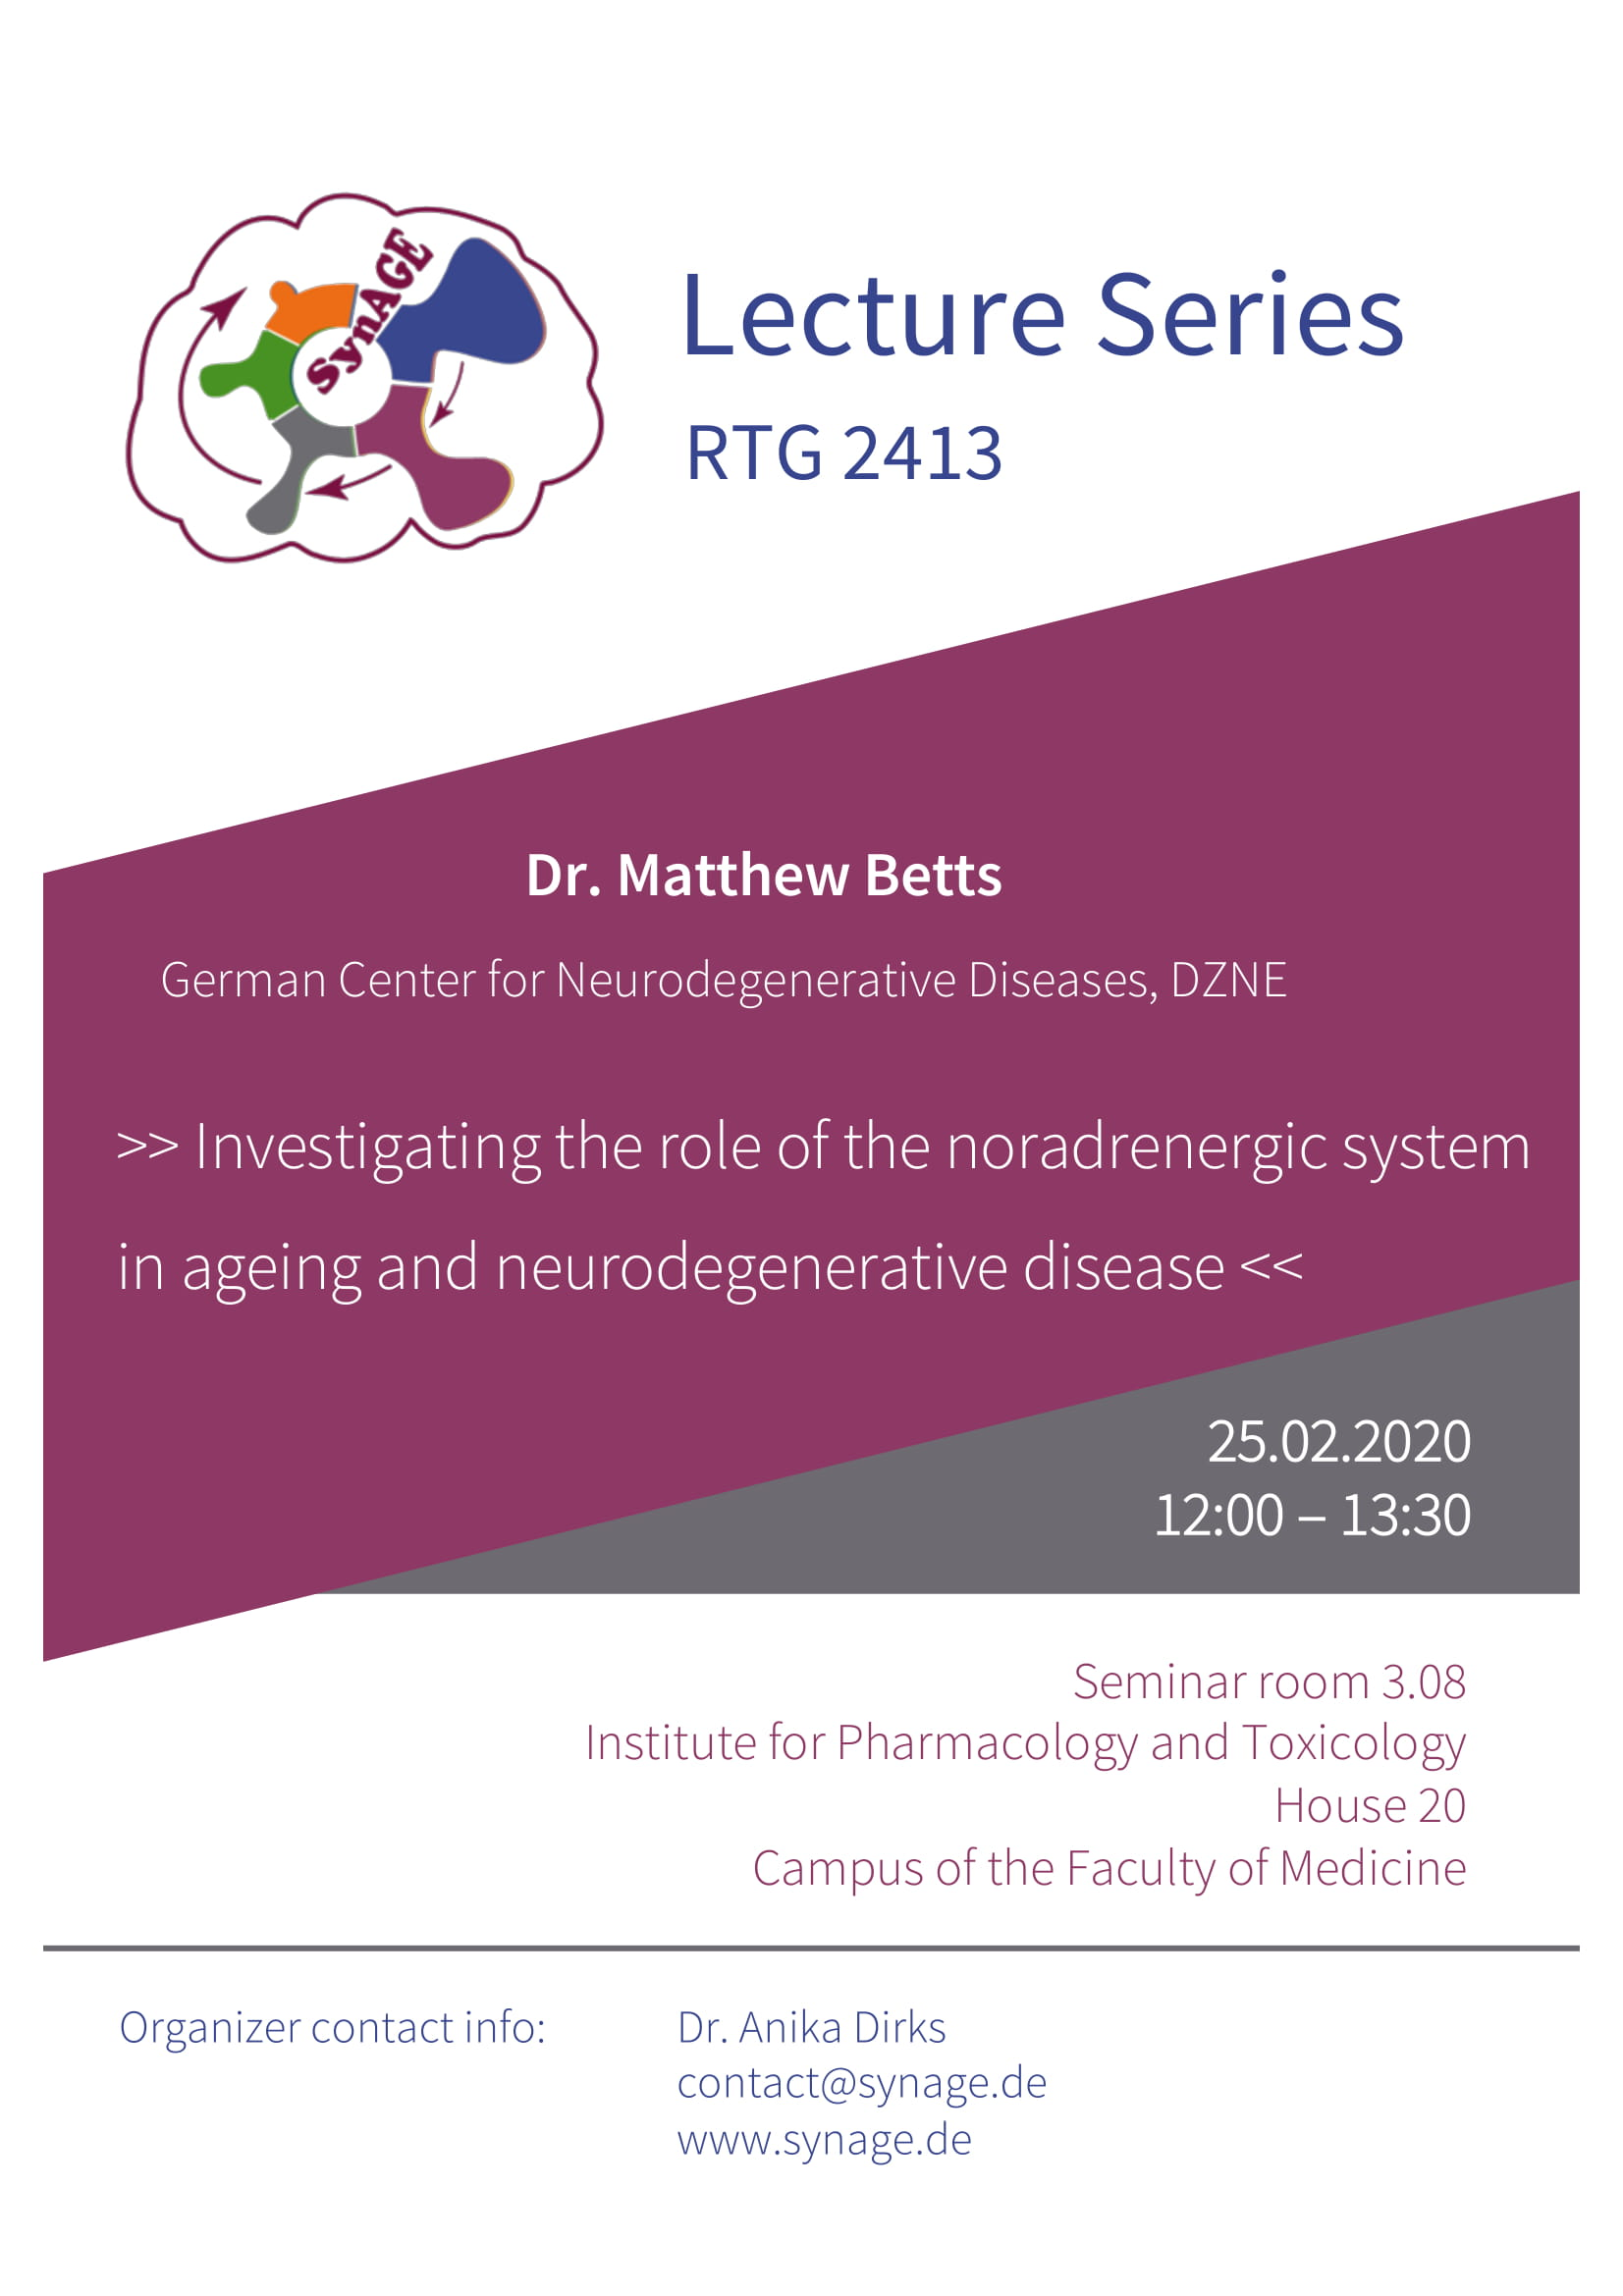 RTG 2413 Lecture: Investigating the role of the noradrenergic system in ageing and neurodegenerative disease @ Institute of Pharmacology and Toxicology, House 20, seminar room 3.08 (in the attic)